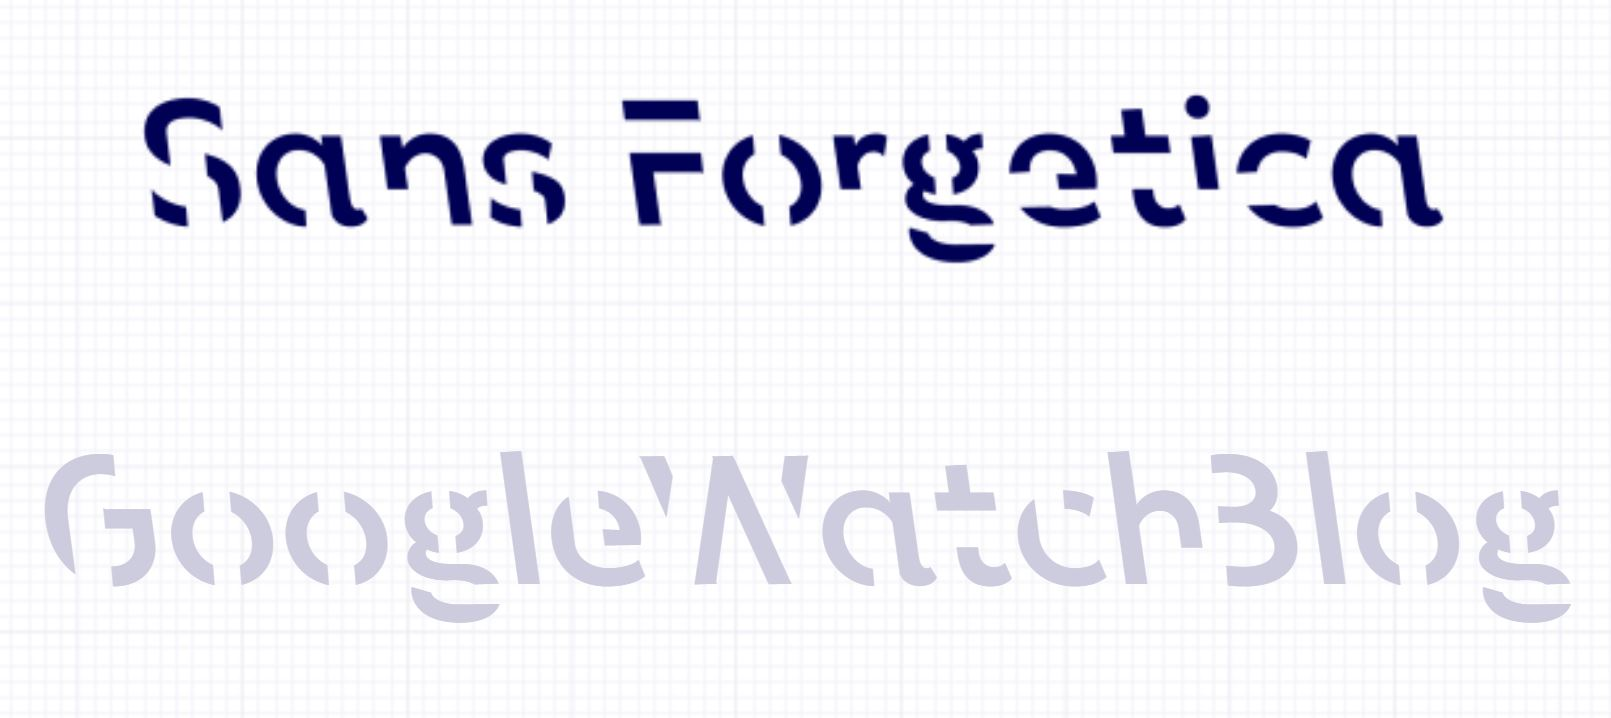 googlewatchblog sans forgetica